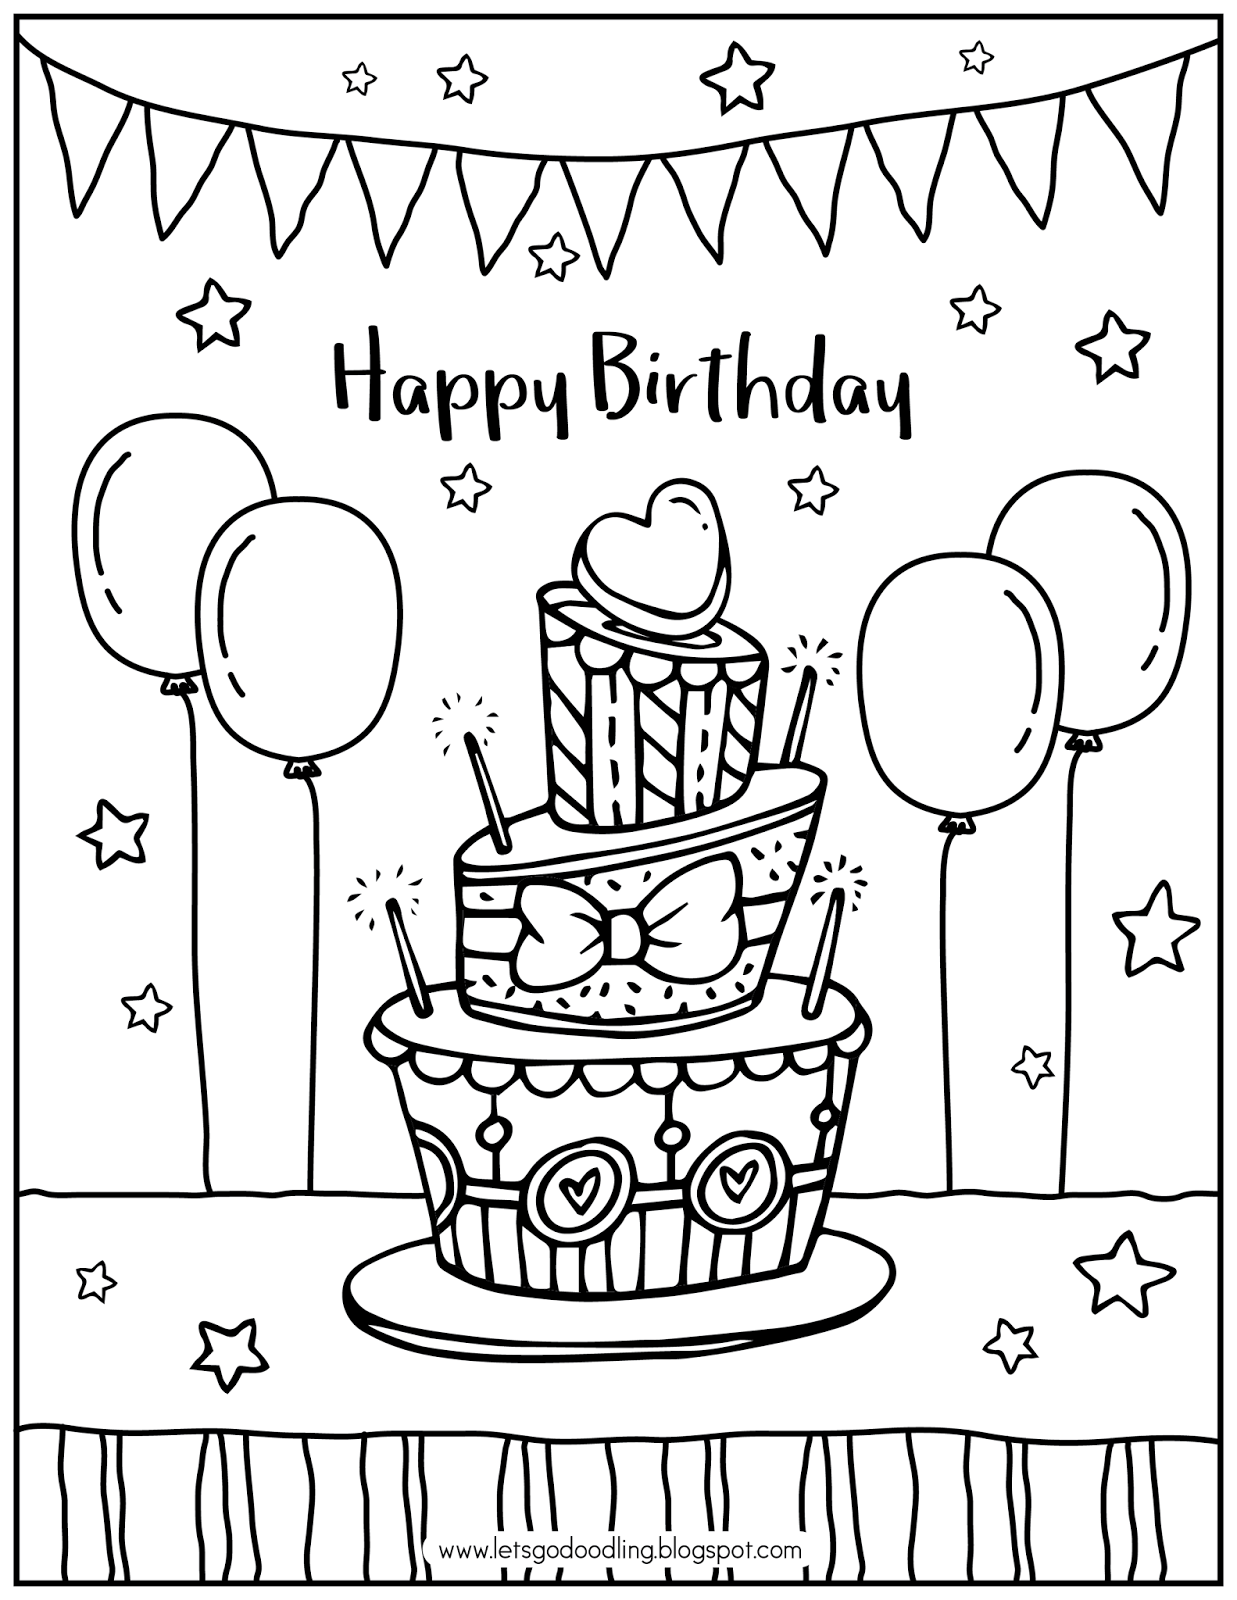 Peachy Free Printable Coloring Page Birthday Cake Funny Birthday Cards Online Alyptdamsfinfo